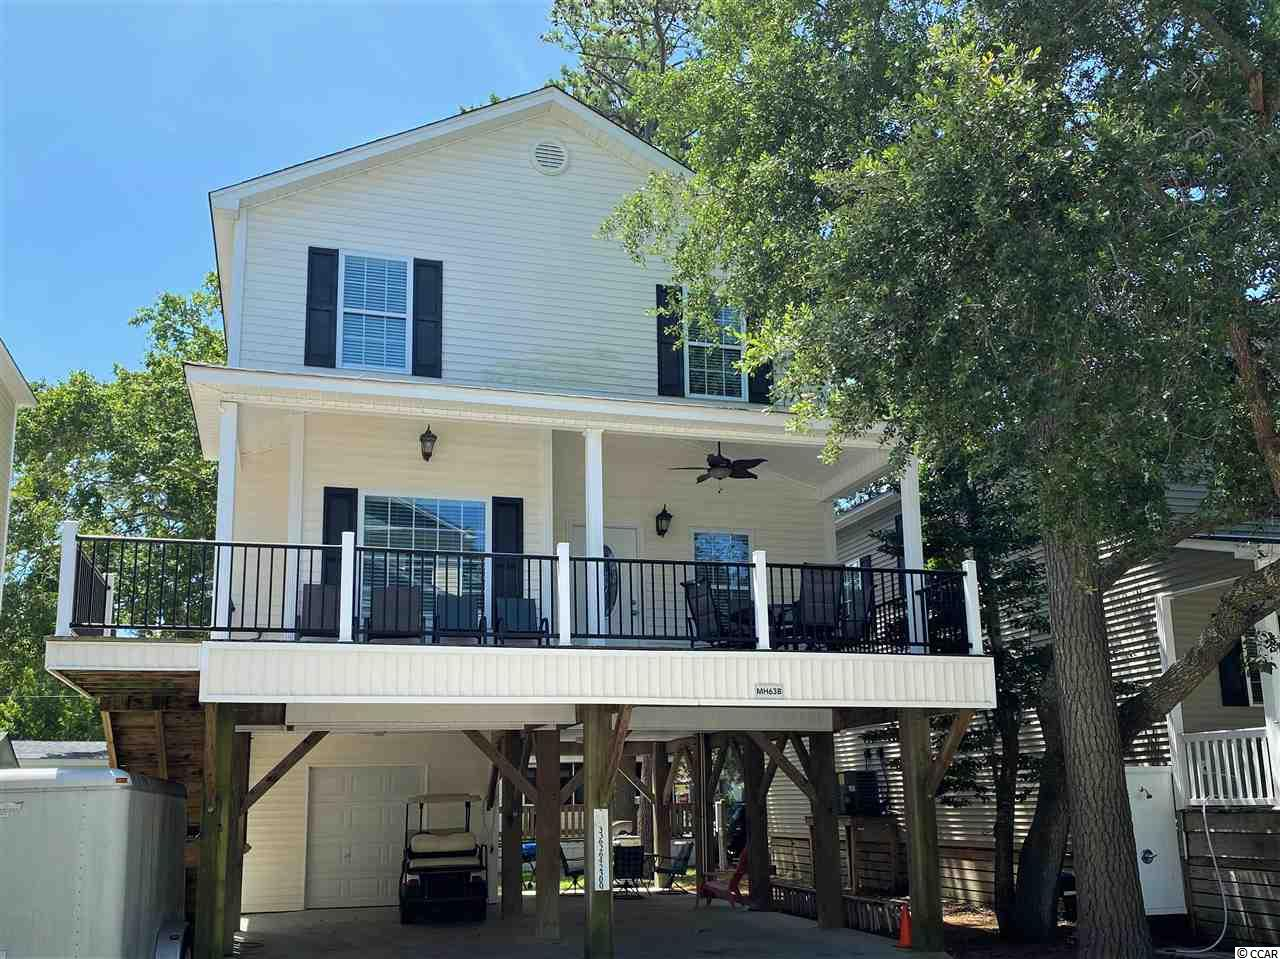 This stunning 4-bedroom, 2-bath home is located in the ocean front community of Ocean Lakes! Perfect for a vacation home or rental!  Move in ready! This beach getaway comes fully furnished, including a complete kitchen set up! Home features a partially covered deck with ceiling fan, outside shower with hot/cold water, outside power & cable for TV, separate HVAC for 1st & 2nd floors, white wood cabinets and granite in the kitchen, ceiling fans in all the bedrooms & family room, and oak stairs. In addition to the private beach access, Ocean Lakes has 310 acres of amenities that include a water park, outdoor and indoor pools, mini golf, and recreation center! 24hr security and trash pickup.